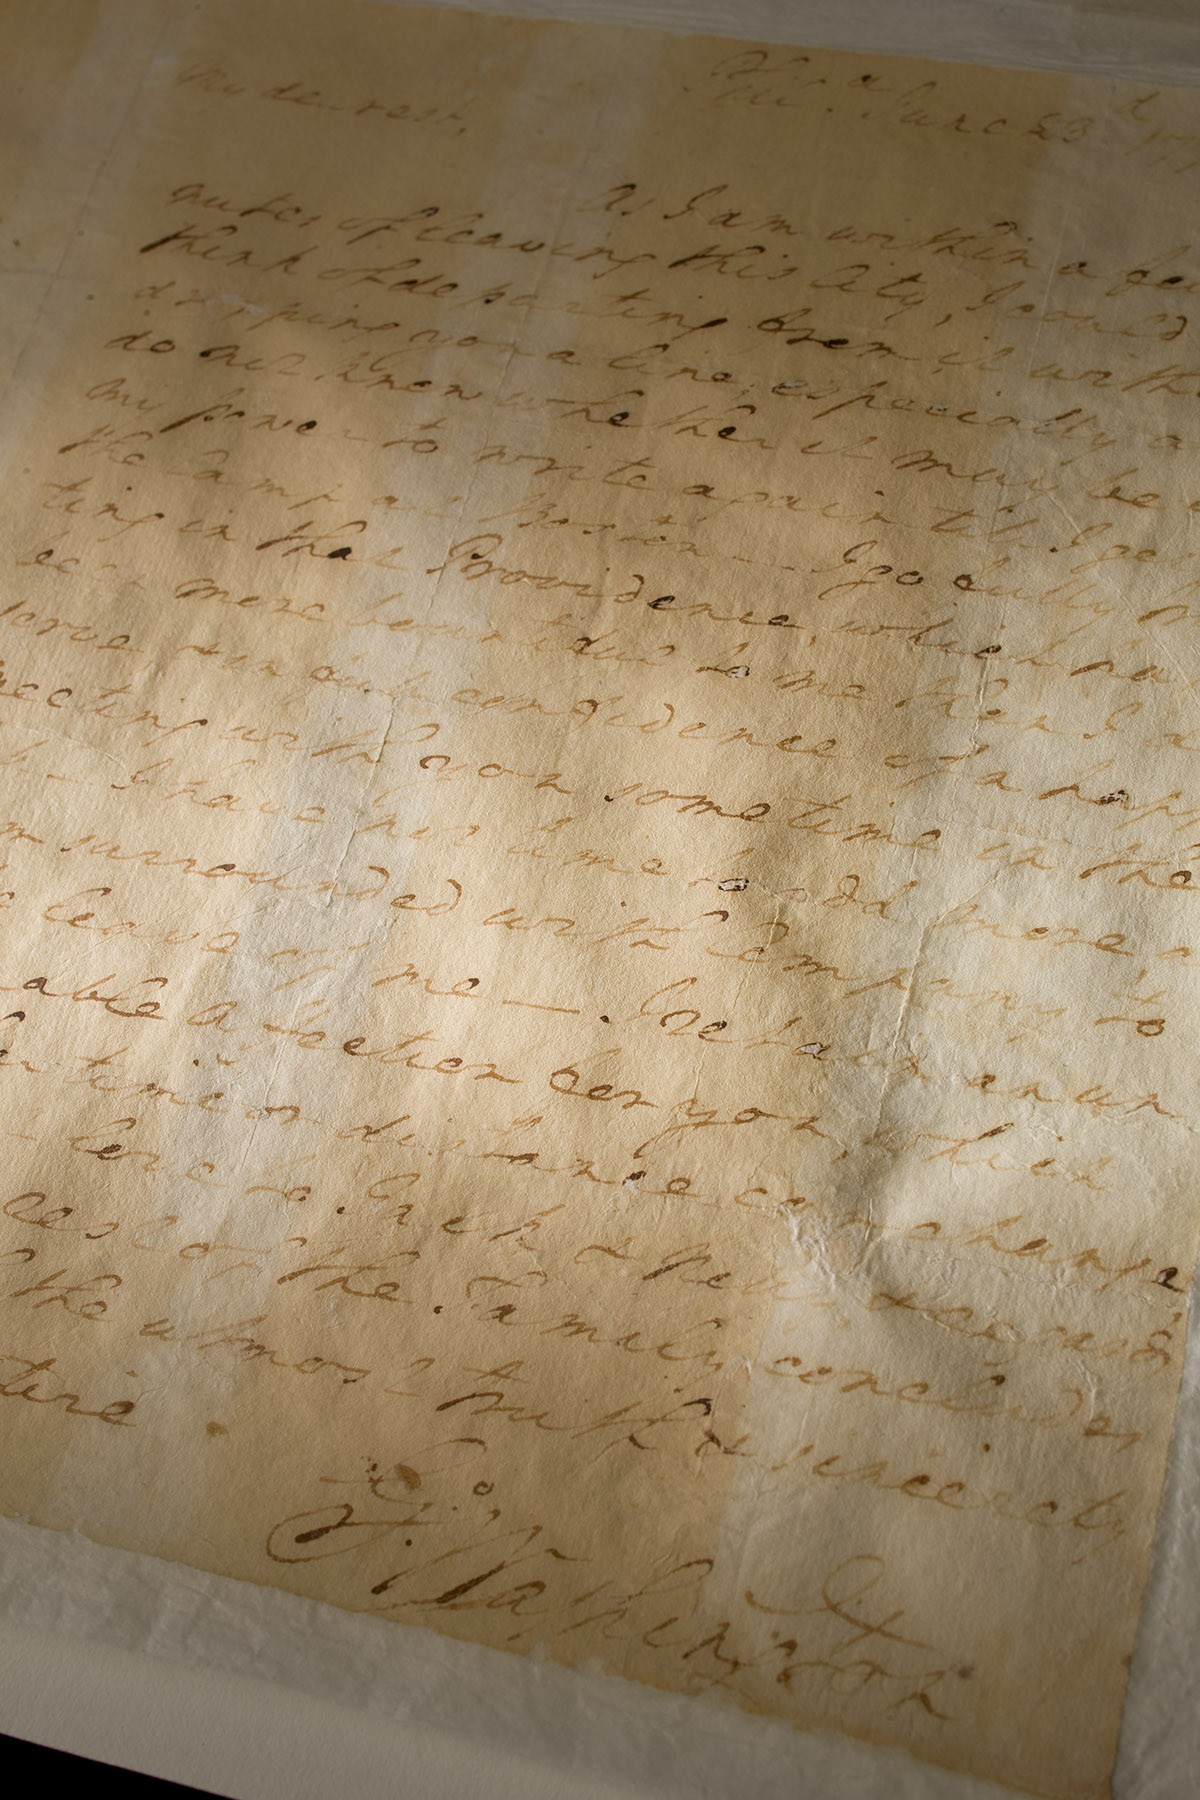 George Washington's Letter